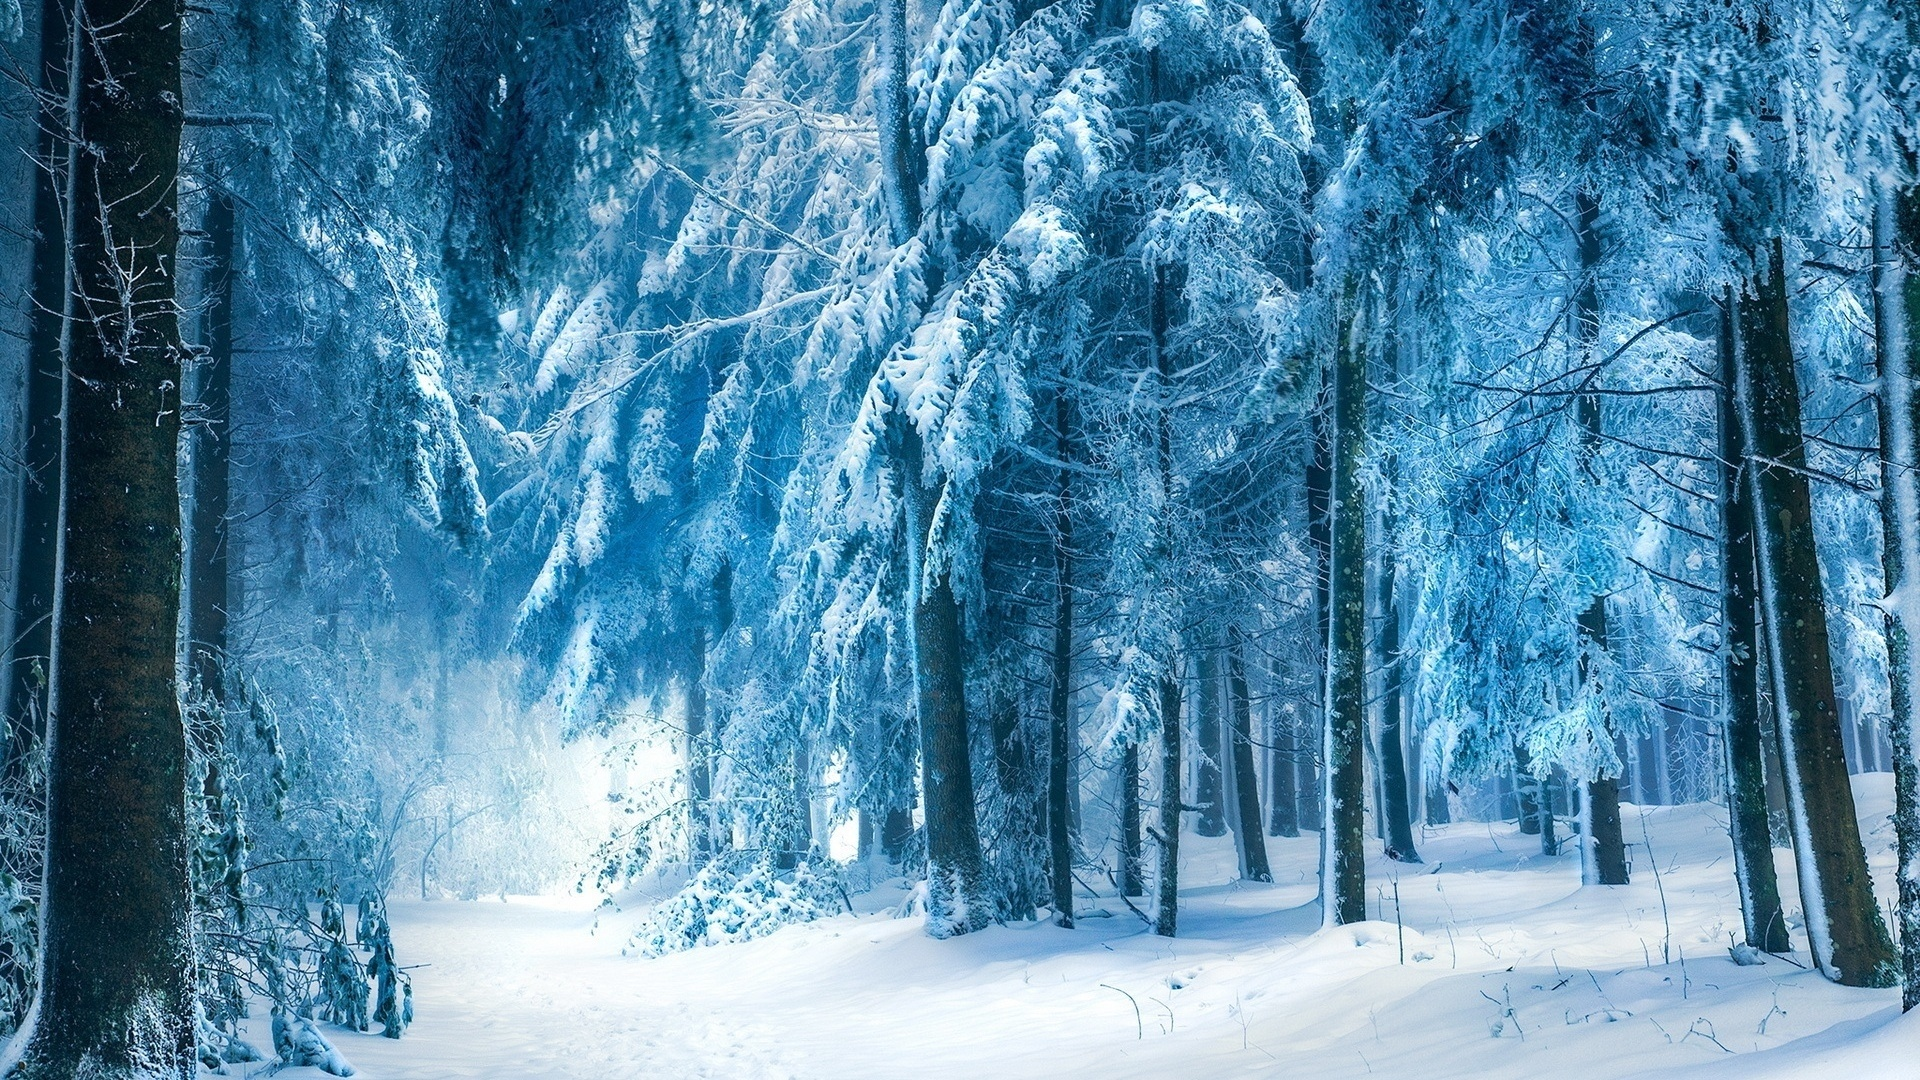 Snow Forest wallpaper photo hd